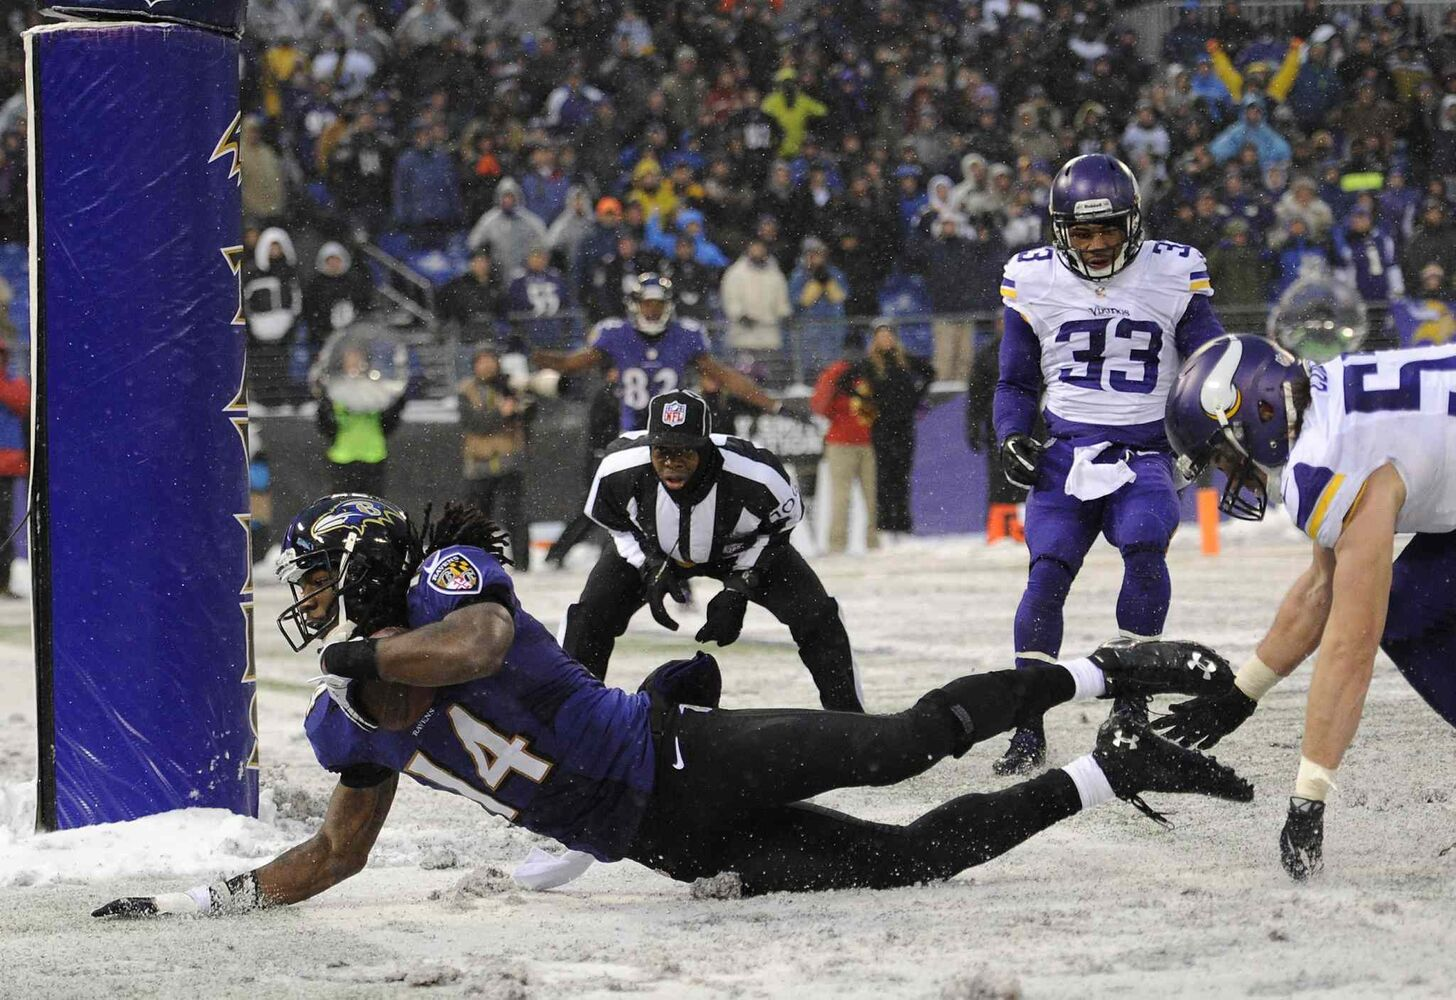 Baltimore Ravens wide receiver Marlon Brown (14) scores a touchdown in the second half against the Minnesota Vikings. (Nick Wass / The Associated Press)